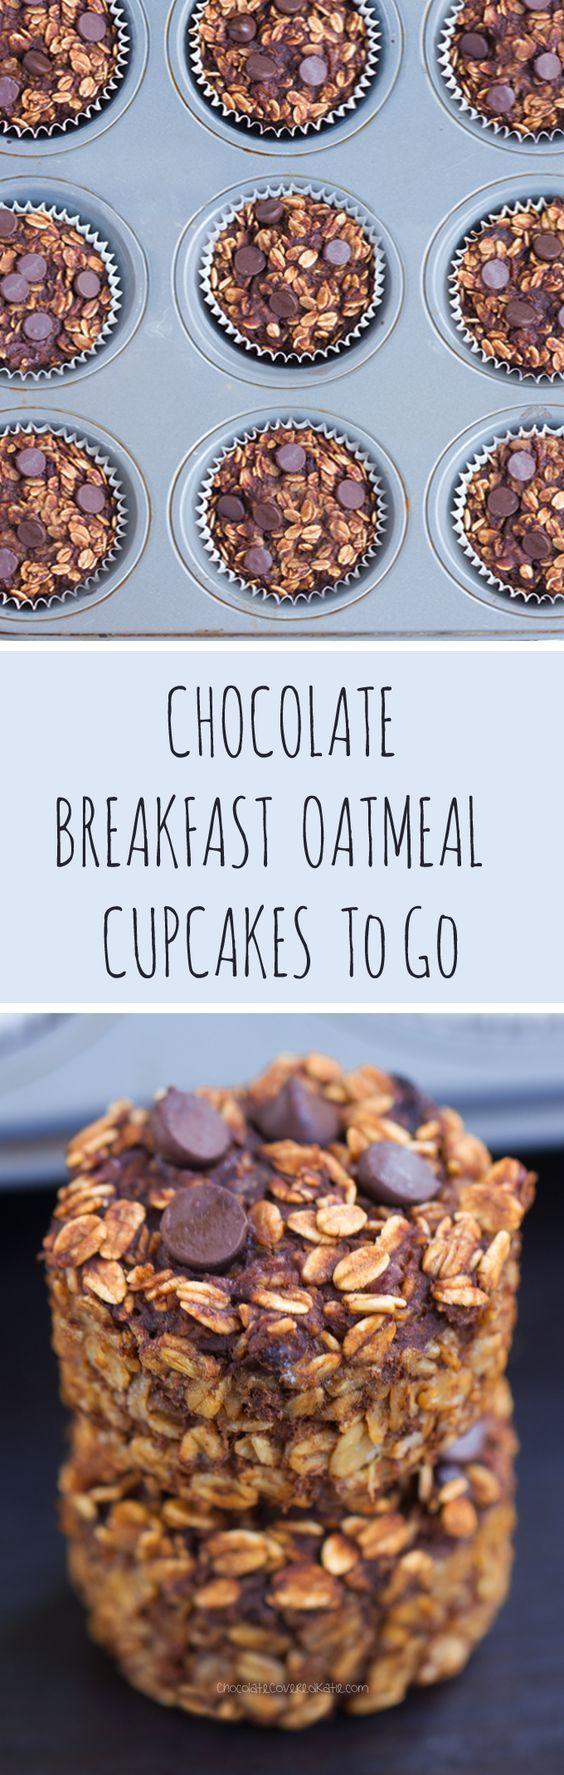 You cook just ONCE and get a delicious breakfast for the entire month - Easy & nutritious recipe loved by kids and adults: http://chocolatecoveredkatie.com/ /choccoveredkt/